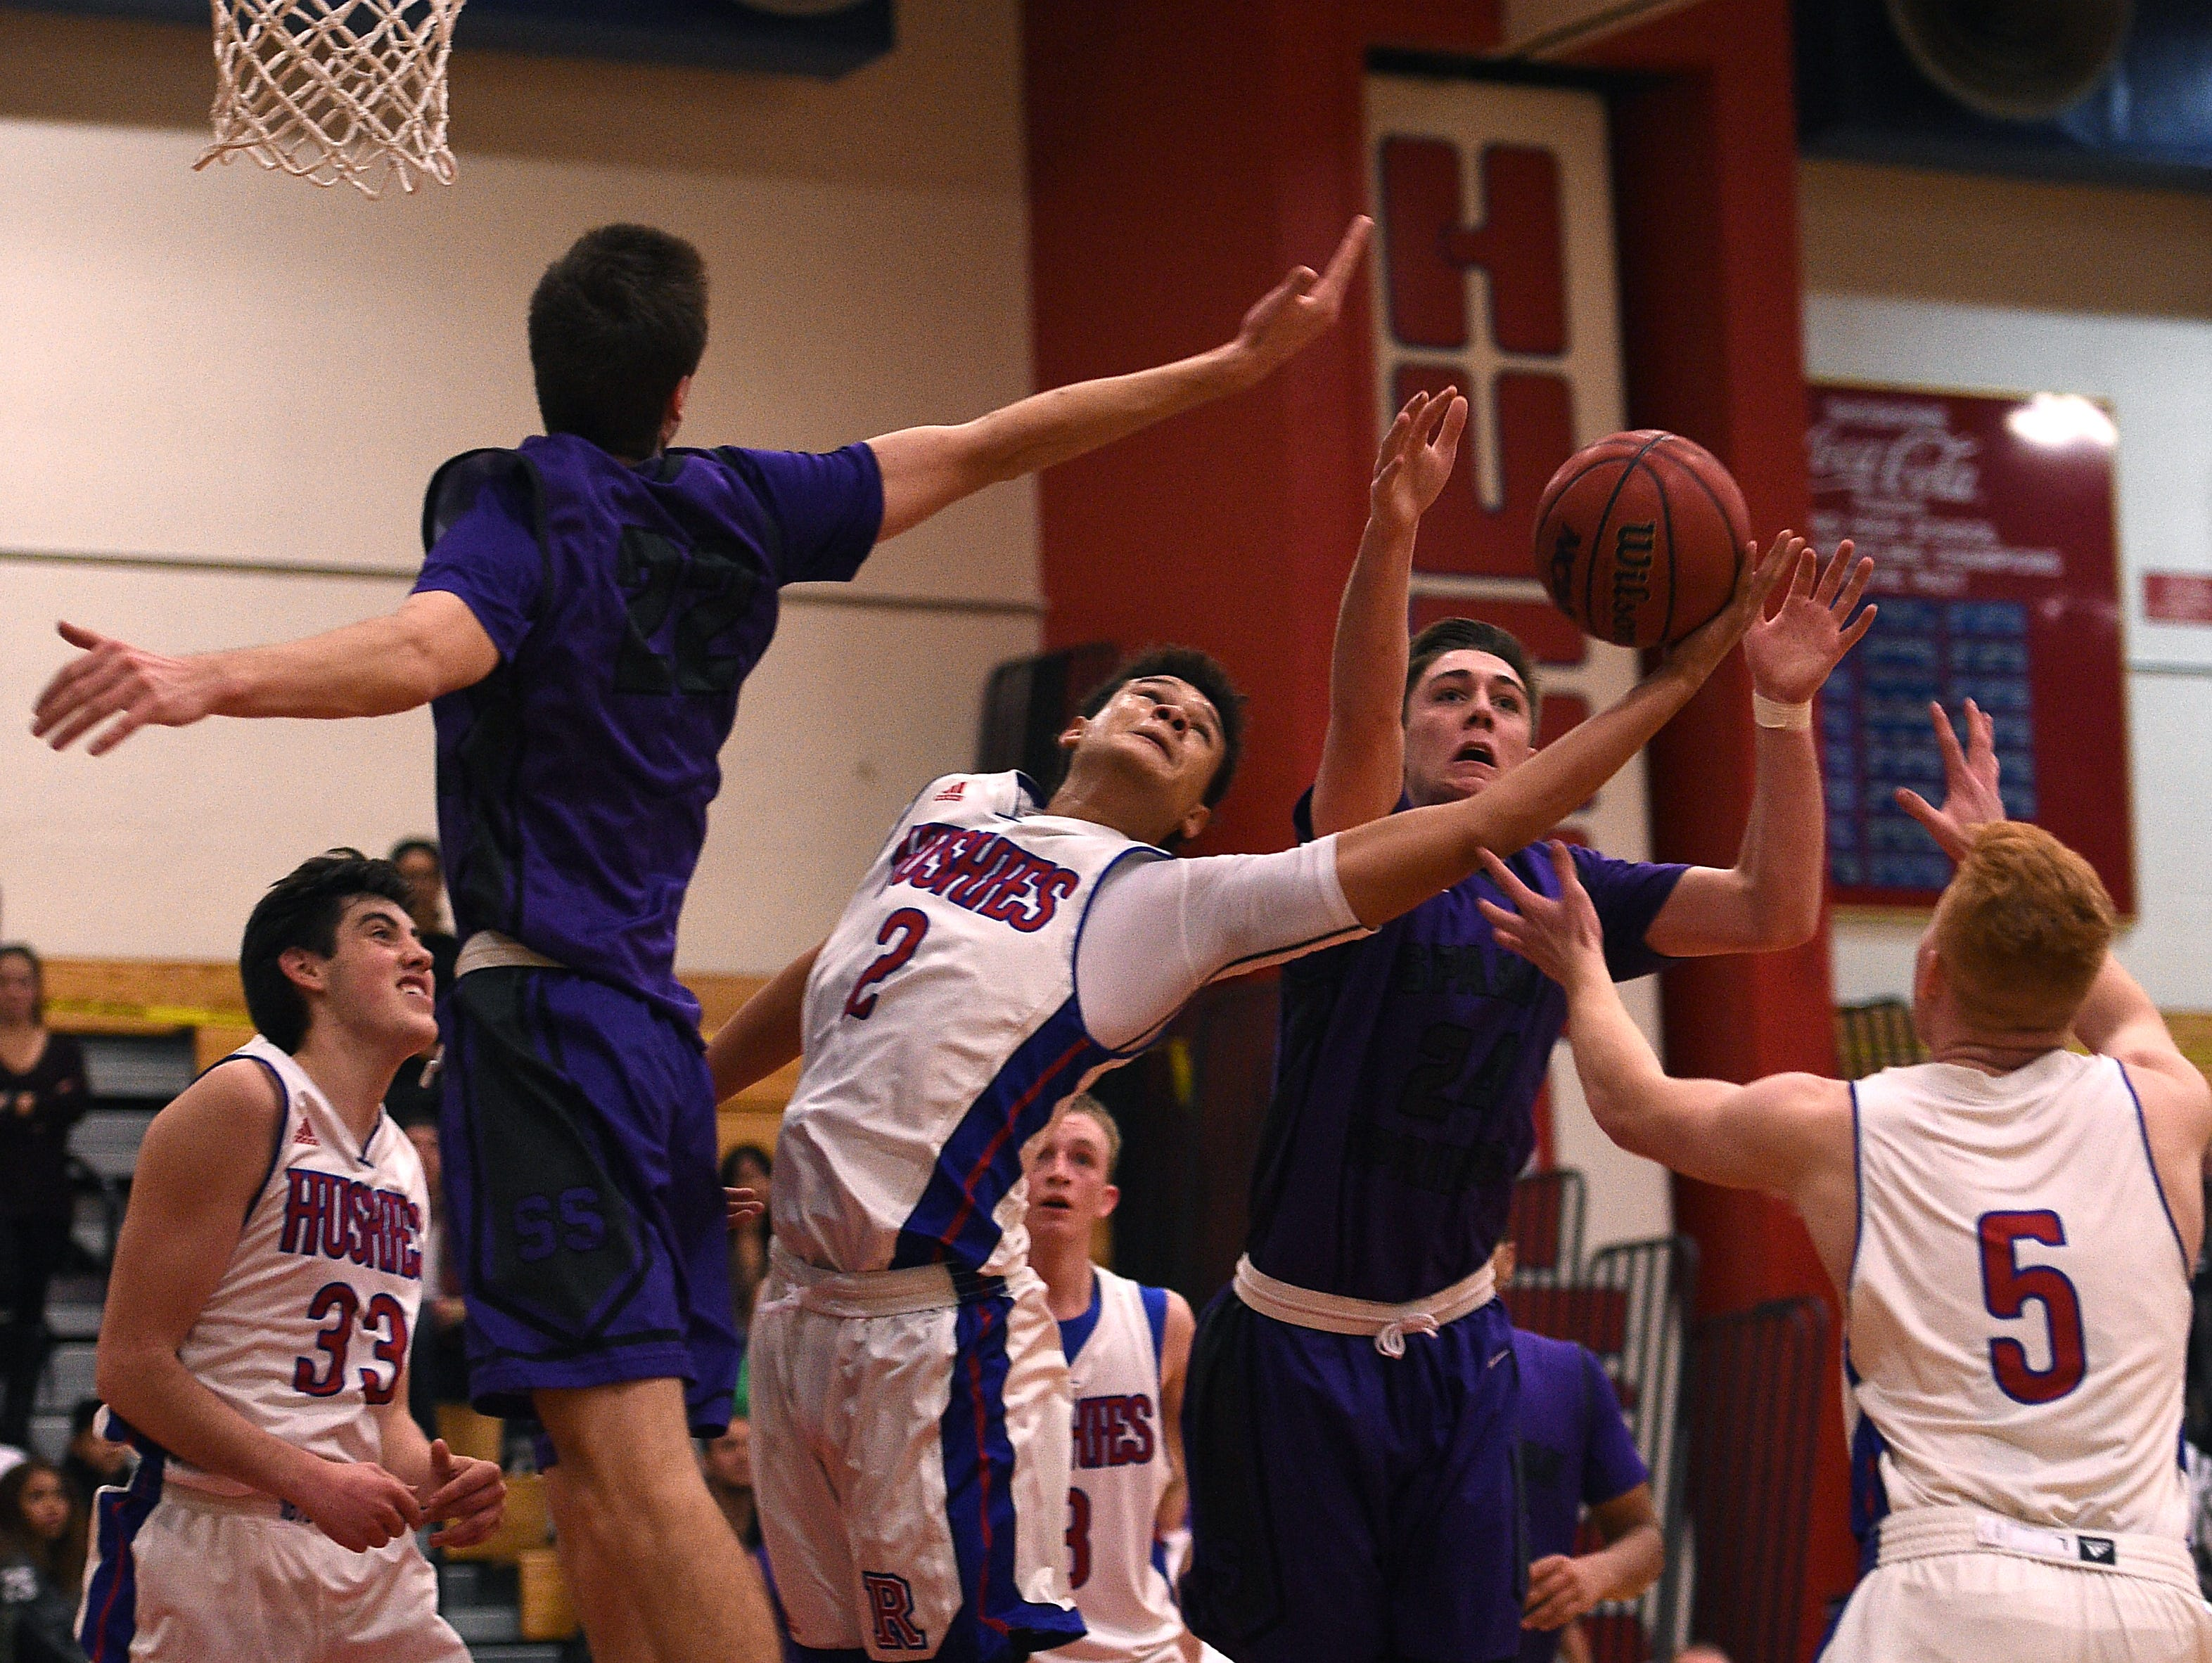 Spanish Springs' Josh Prizina (24) and Reno's Logan Shaw (2) fight for a rebound during their basketball game in Reno on Friday.